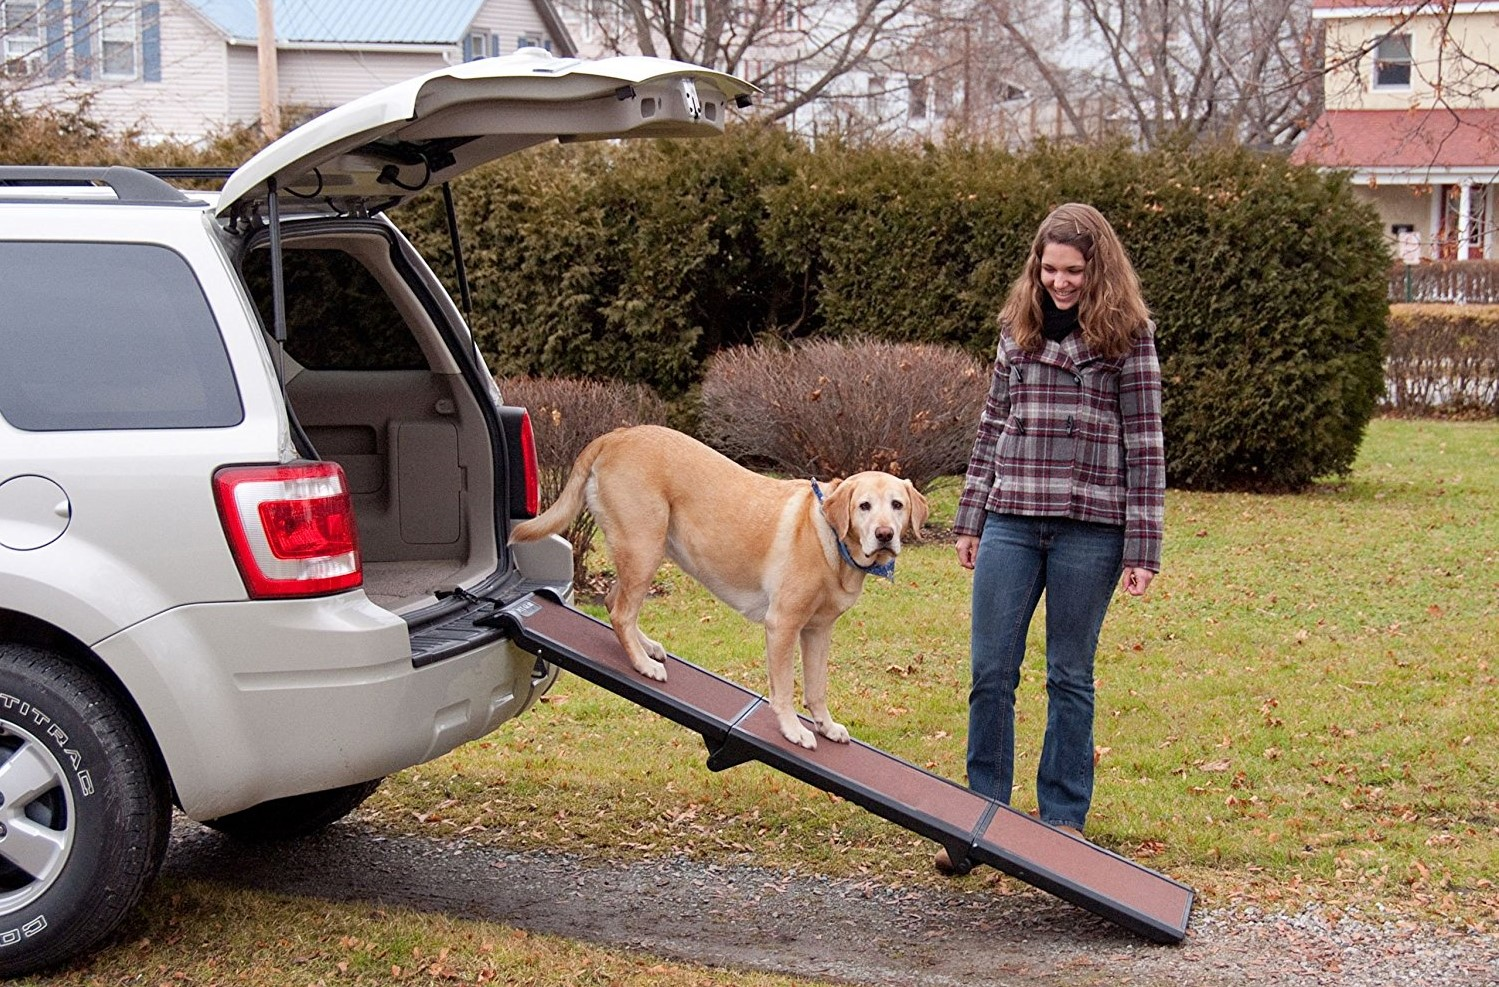 Pet-Gear-Tri-Fold-Ramp-Supports-up-to-200lbs-71-in.-Long-Patented-Compact-Easy-Fold-Design-Two-Models-to-Choose-from-Safety-Tether-Included-1 10 Best Pet Ramps